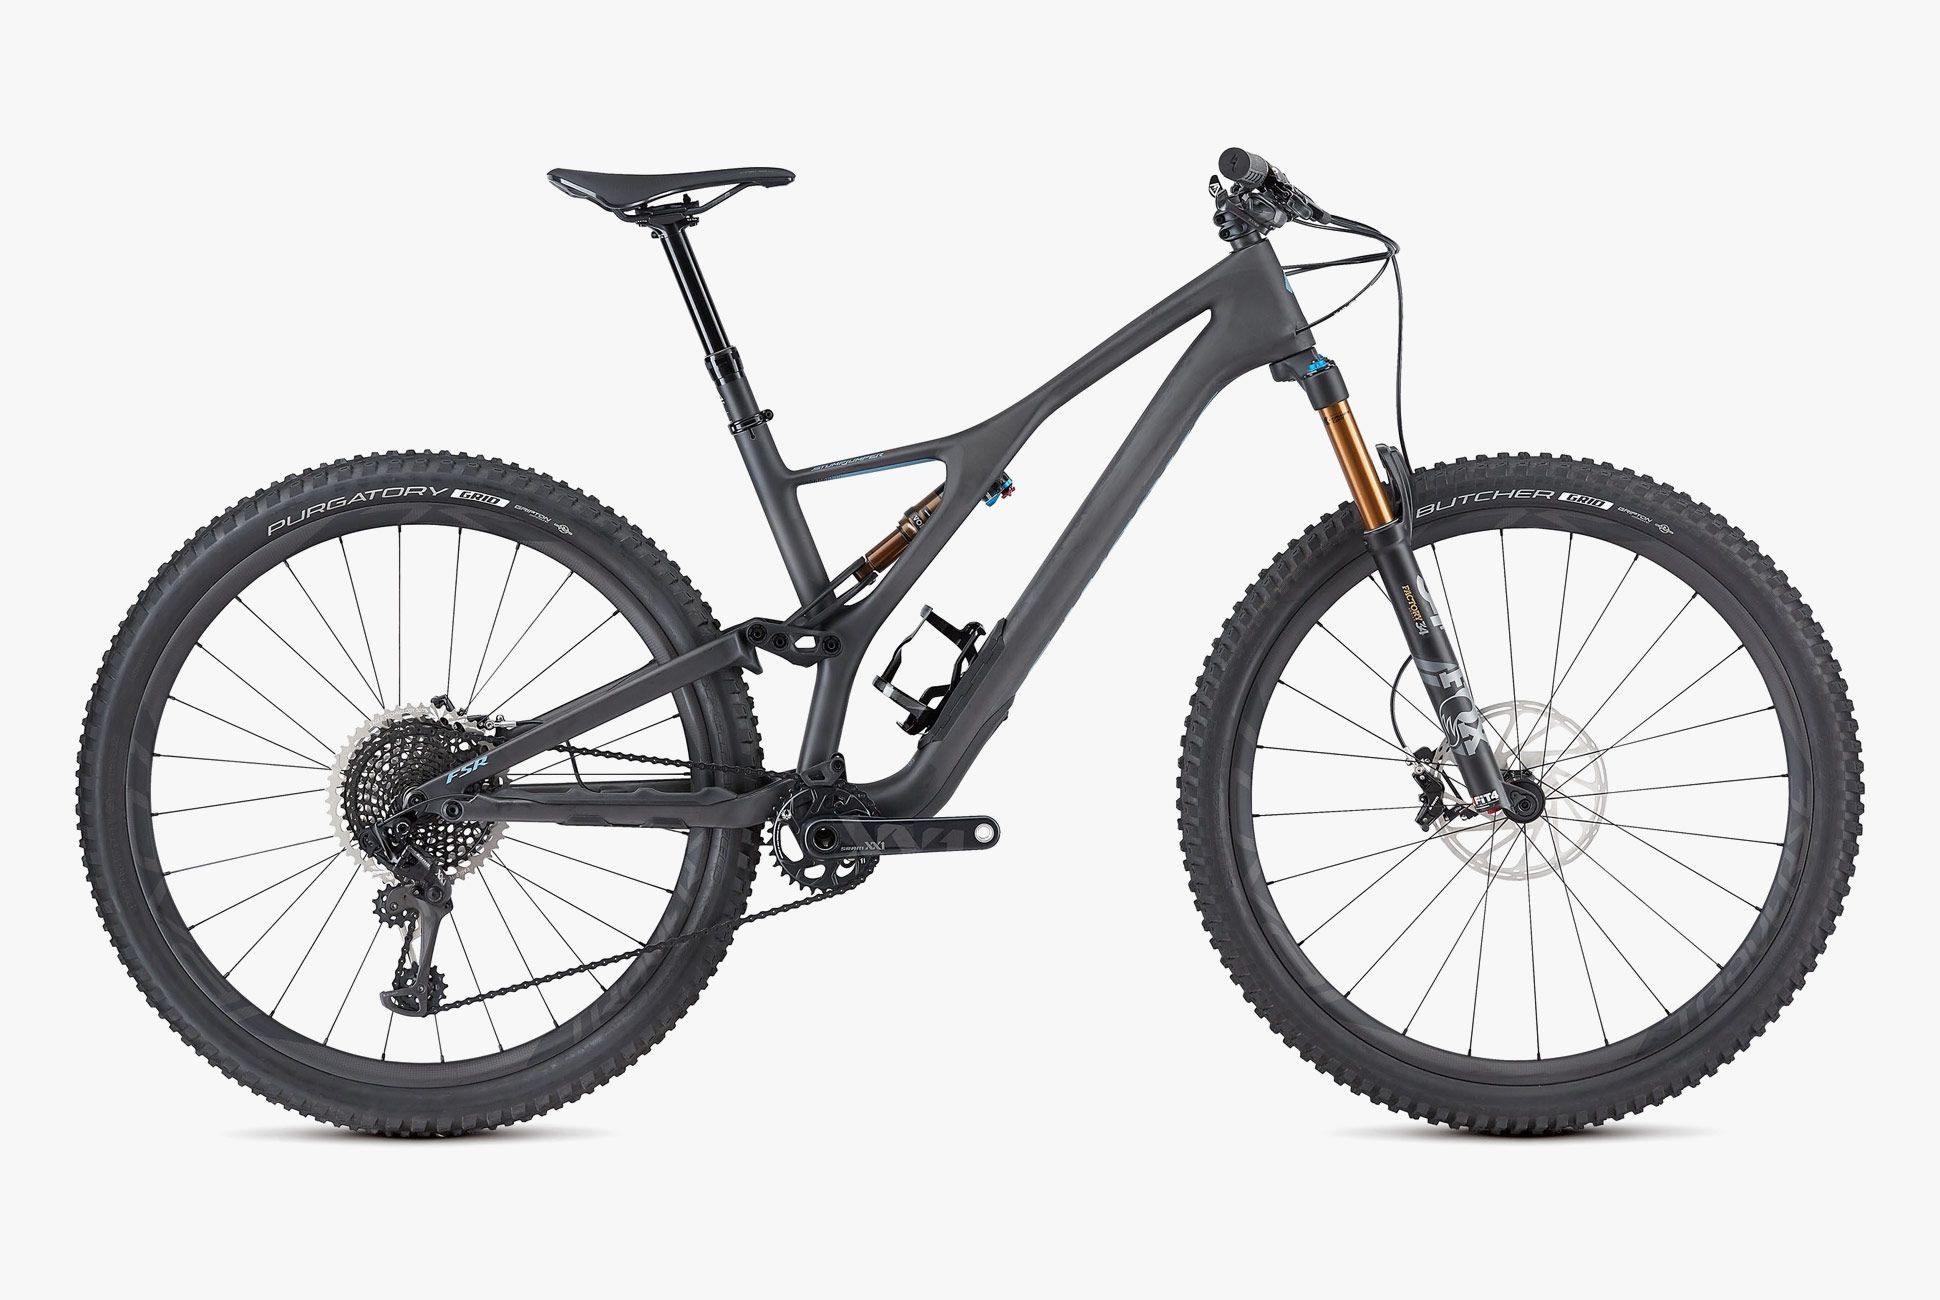 Did Specialized Just Make The Most Versatile Mountain Bike Ever